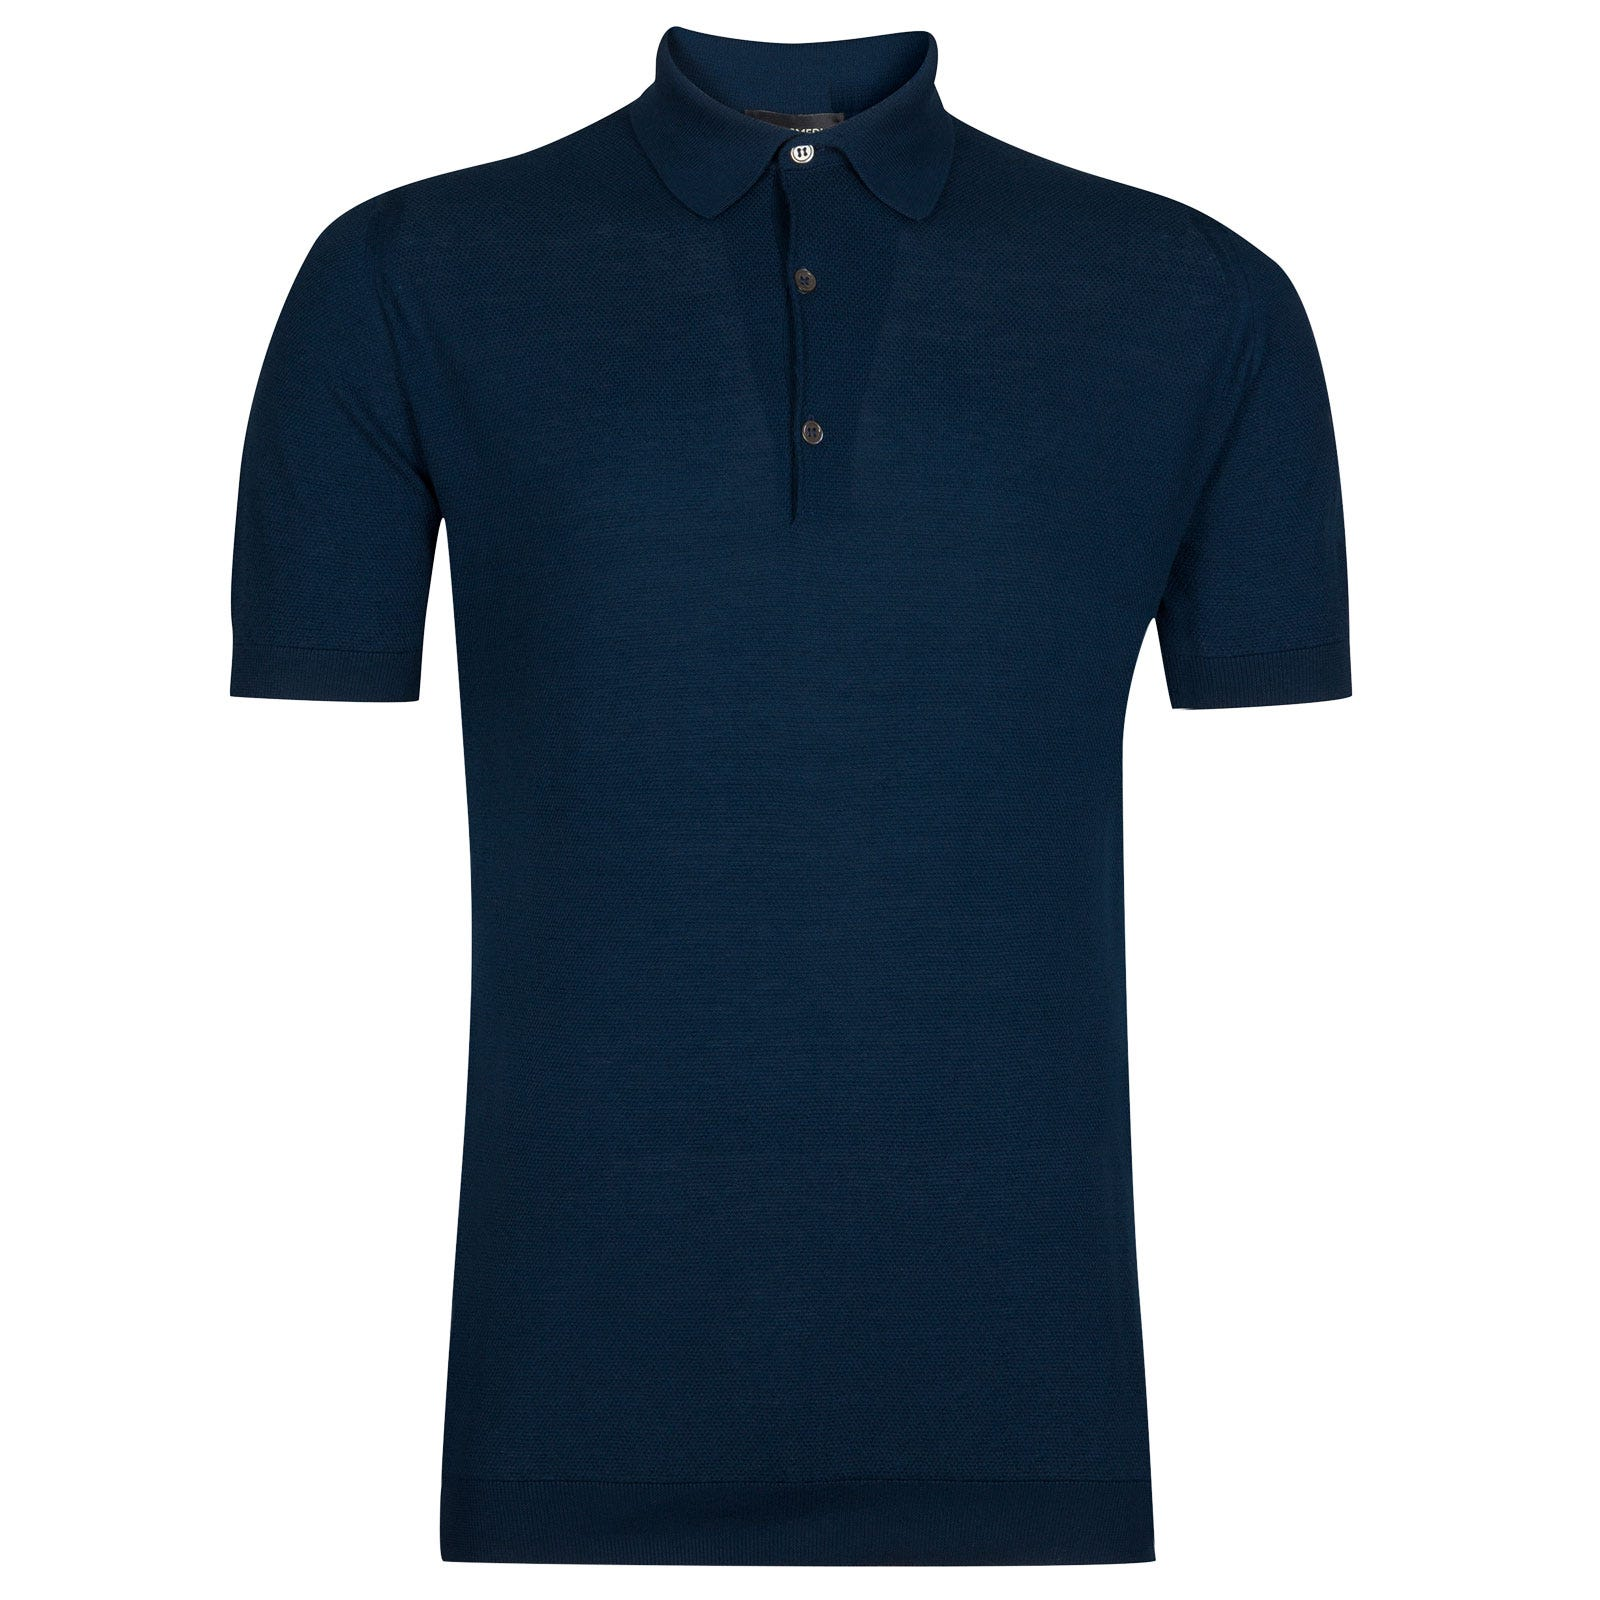 John Smedley roth Sea Island Cotton Shirt in Indigo-XXL